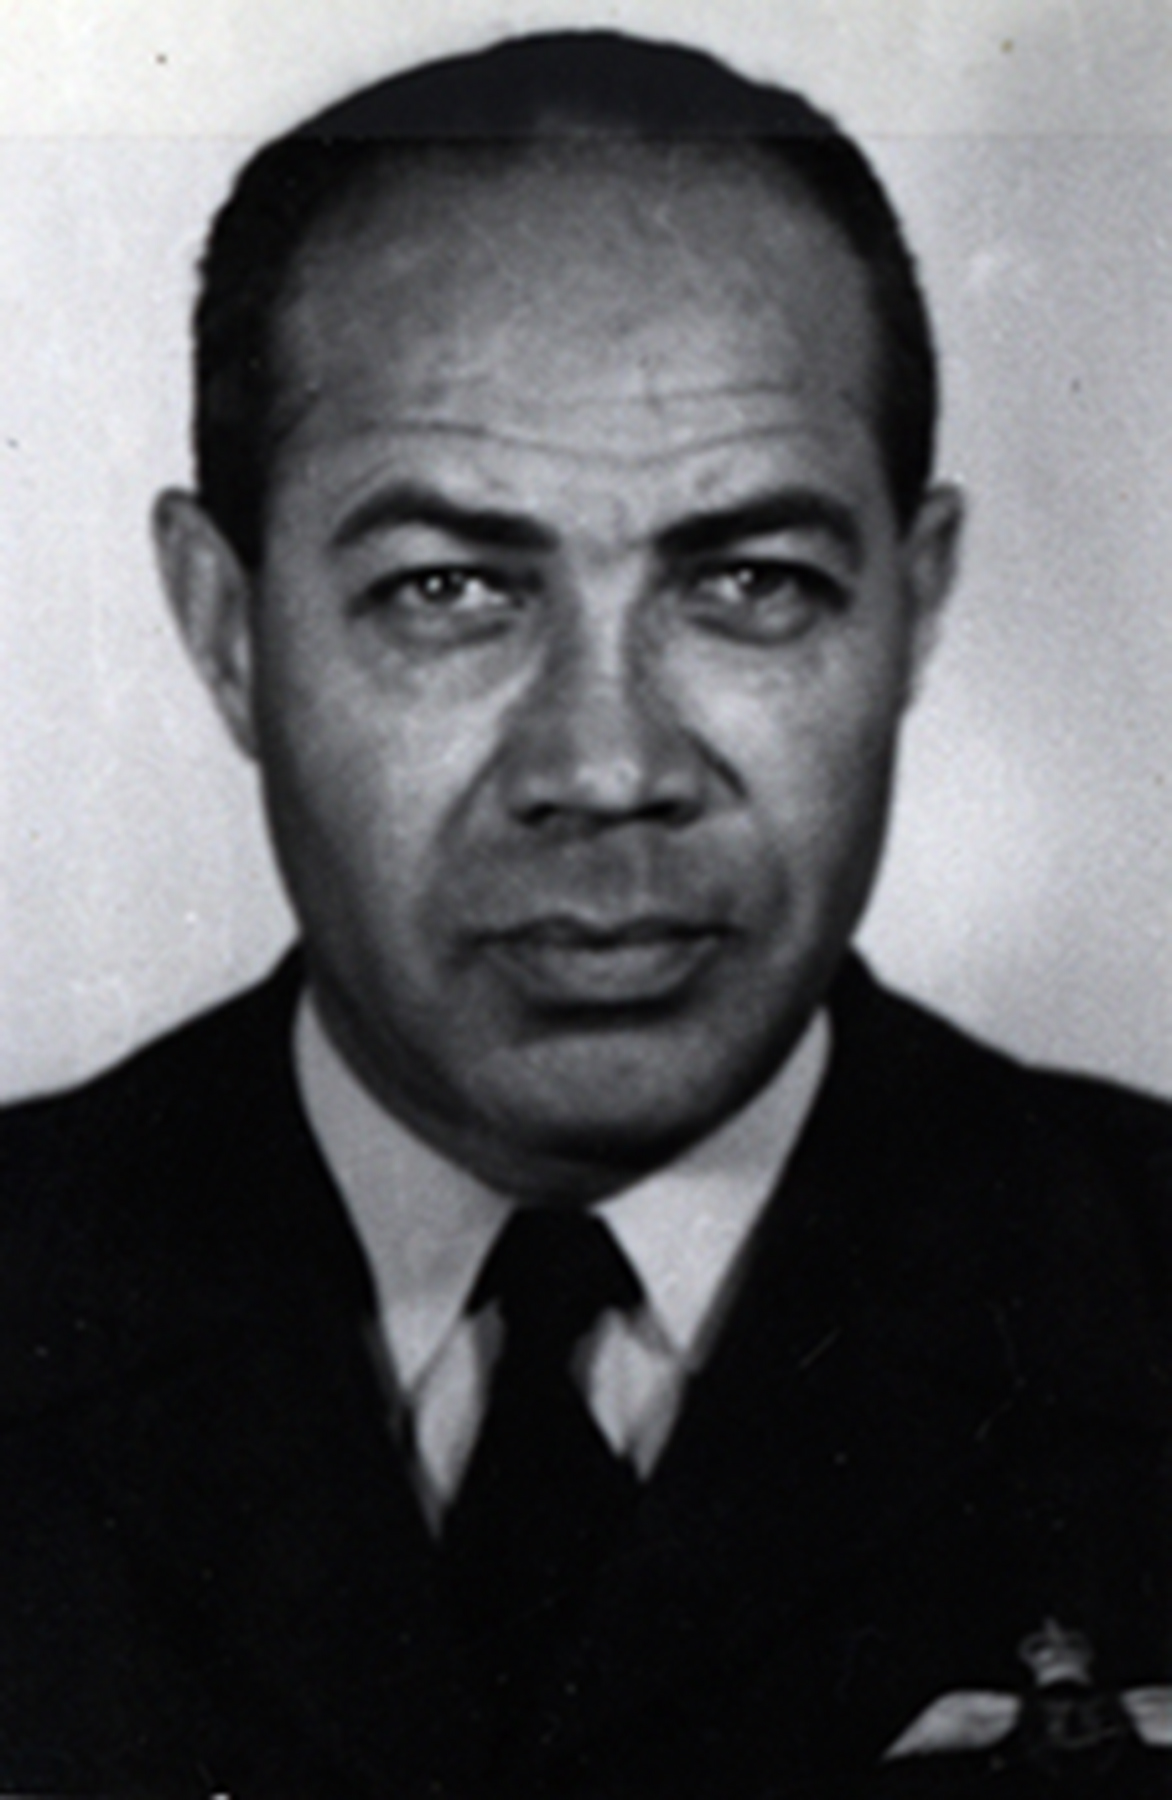 A black and white photo of a black man wearing a shirt and tie, and a uniform jacket with wings.